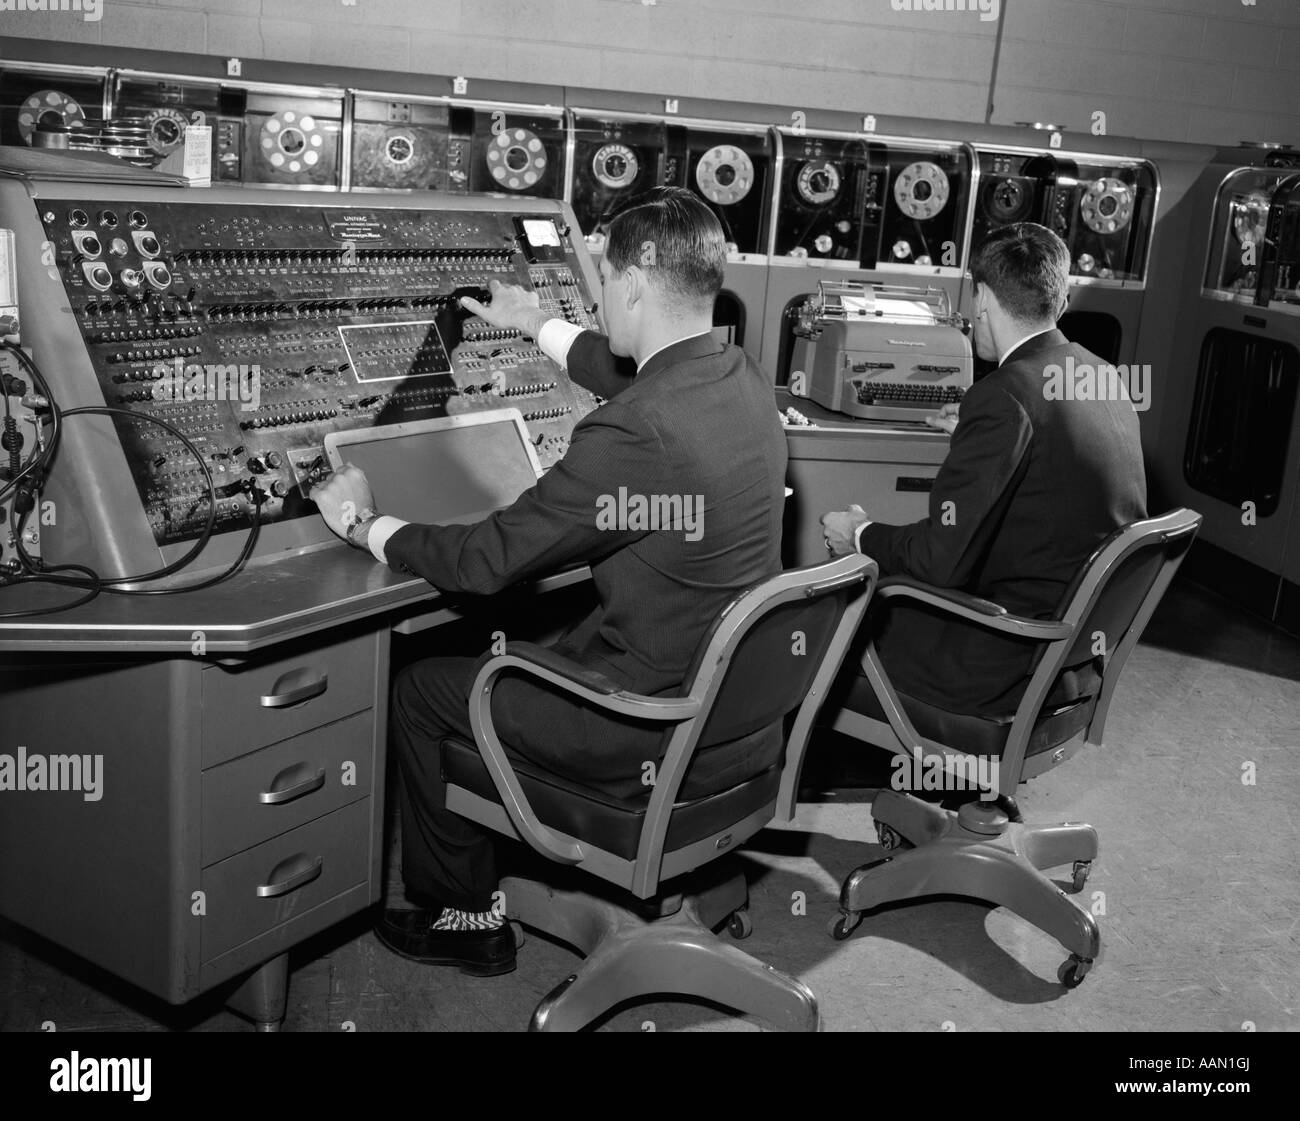 1950s 1960s UNIVAC COMPUTER ROOM WITH TWO MEN WORKING AT CONSOLE AND TYPEWRITER KEYBOARD - Stock Image